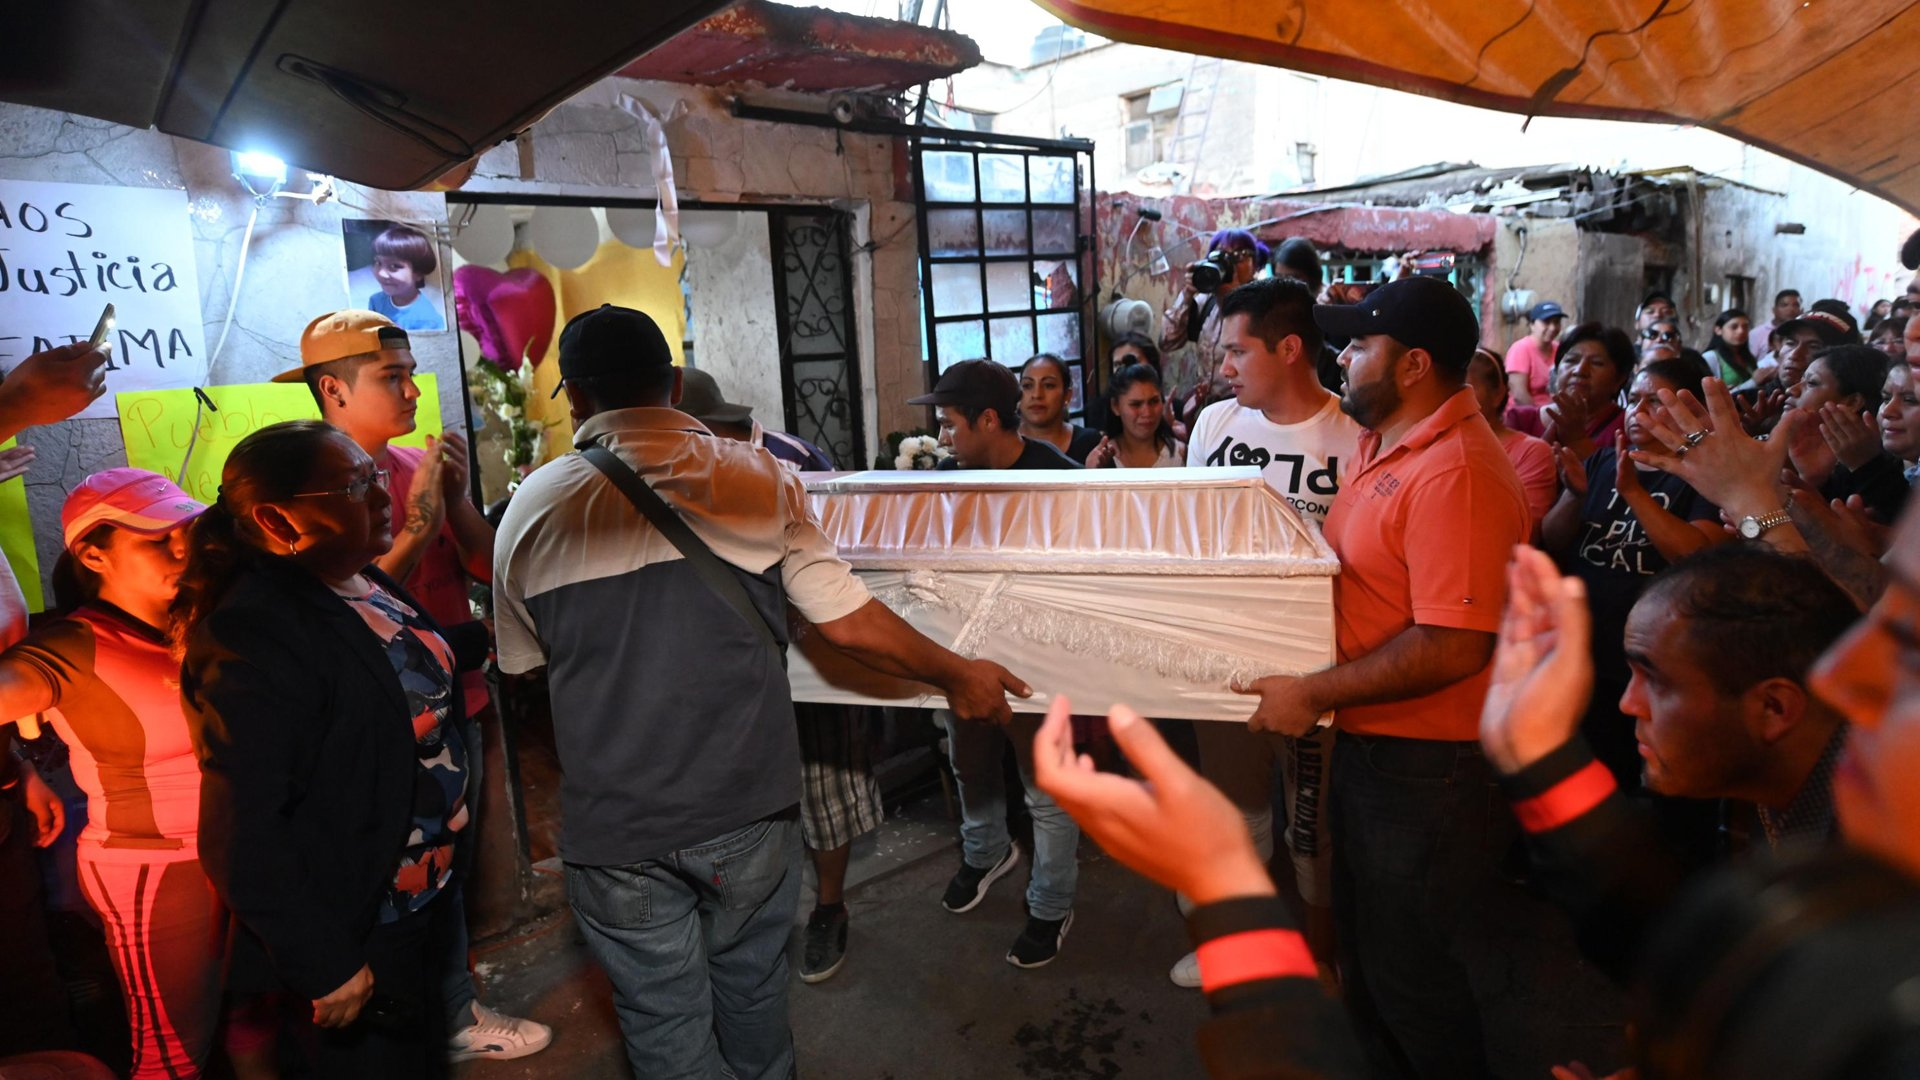 People carry the coffin during the funeral of 7-year-old Fátima, whose body was found over the weekend. (Credit: PEDRO PARDO/AFP/AFP via Getty Images)